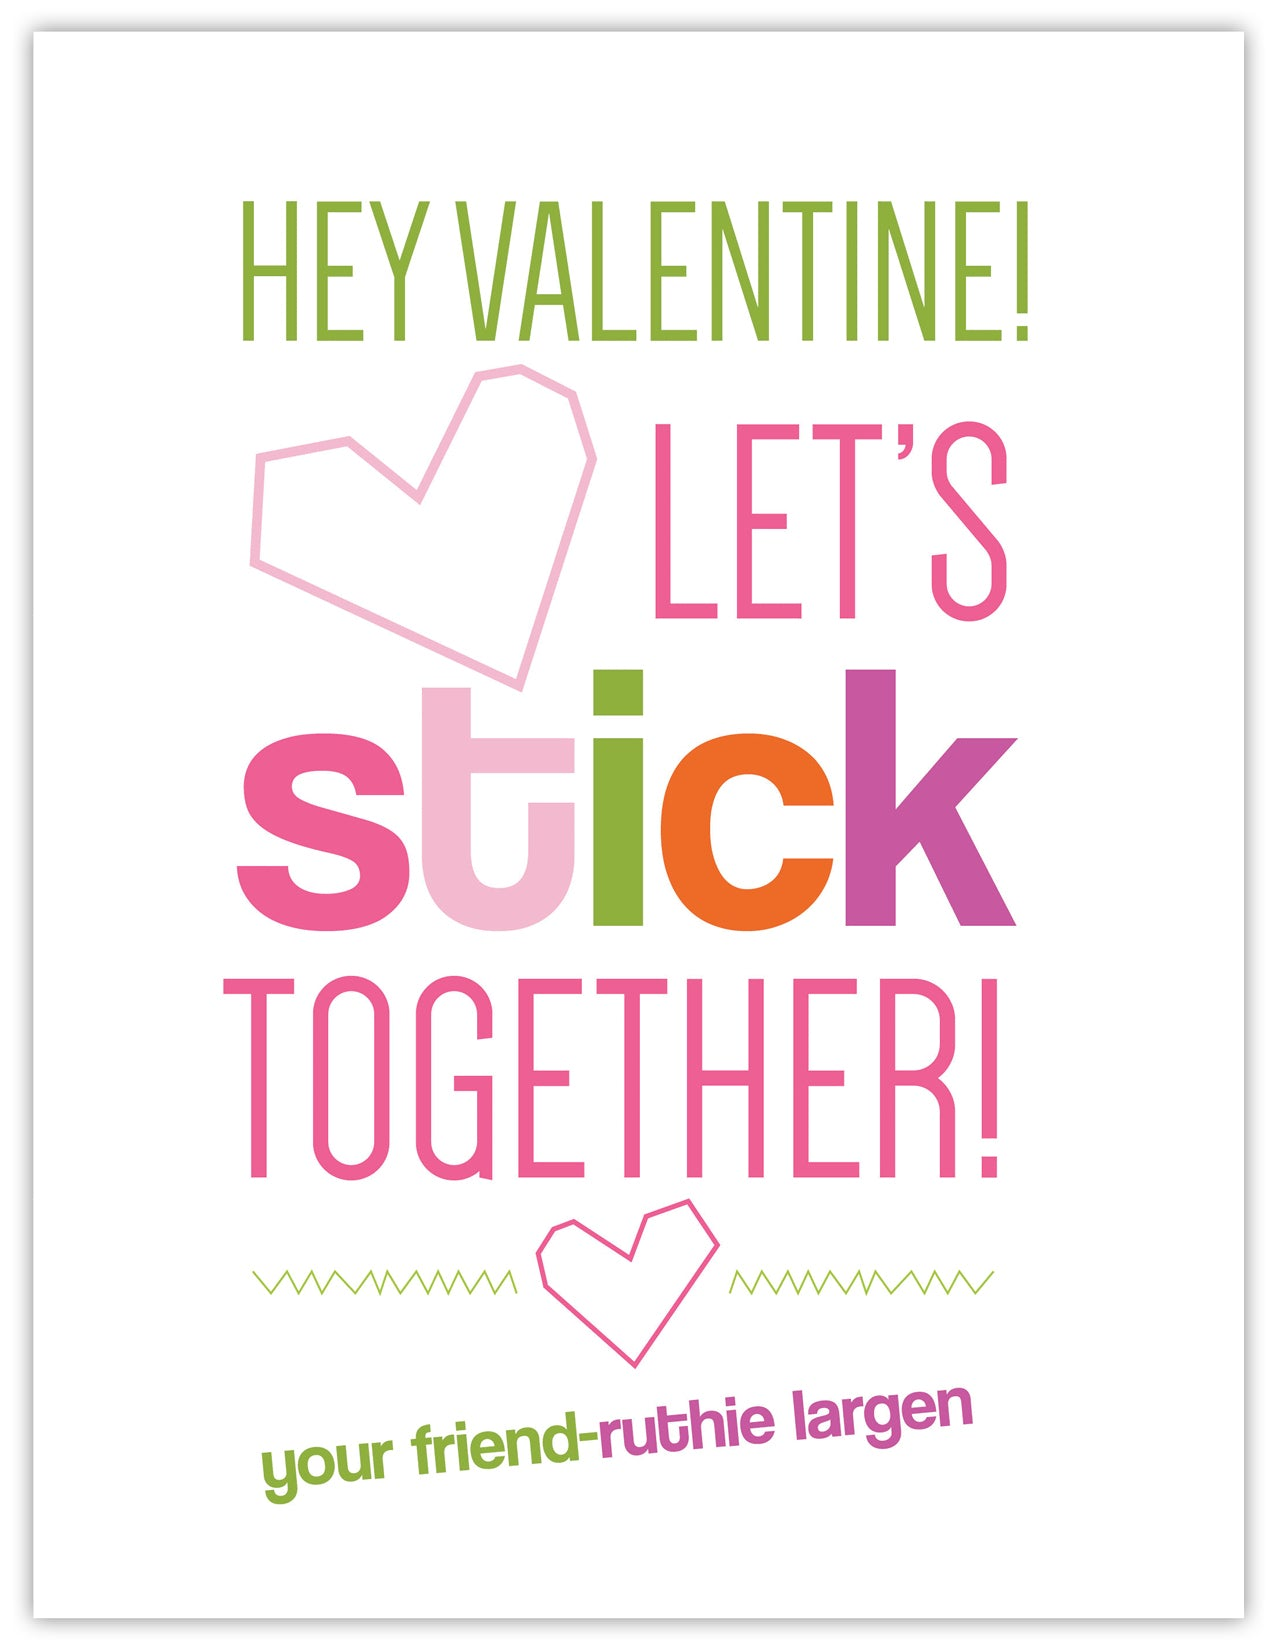 Stick Together Valentine